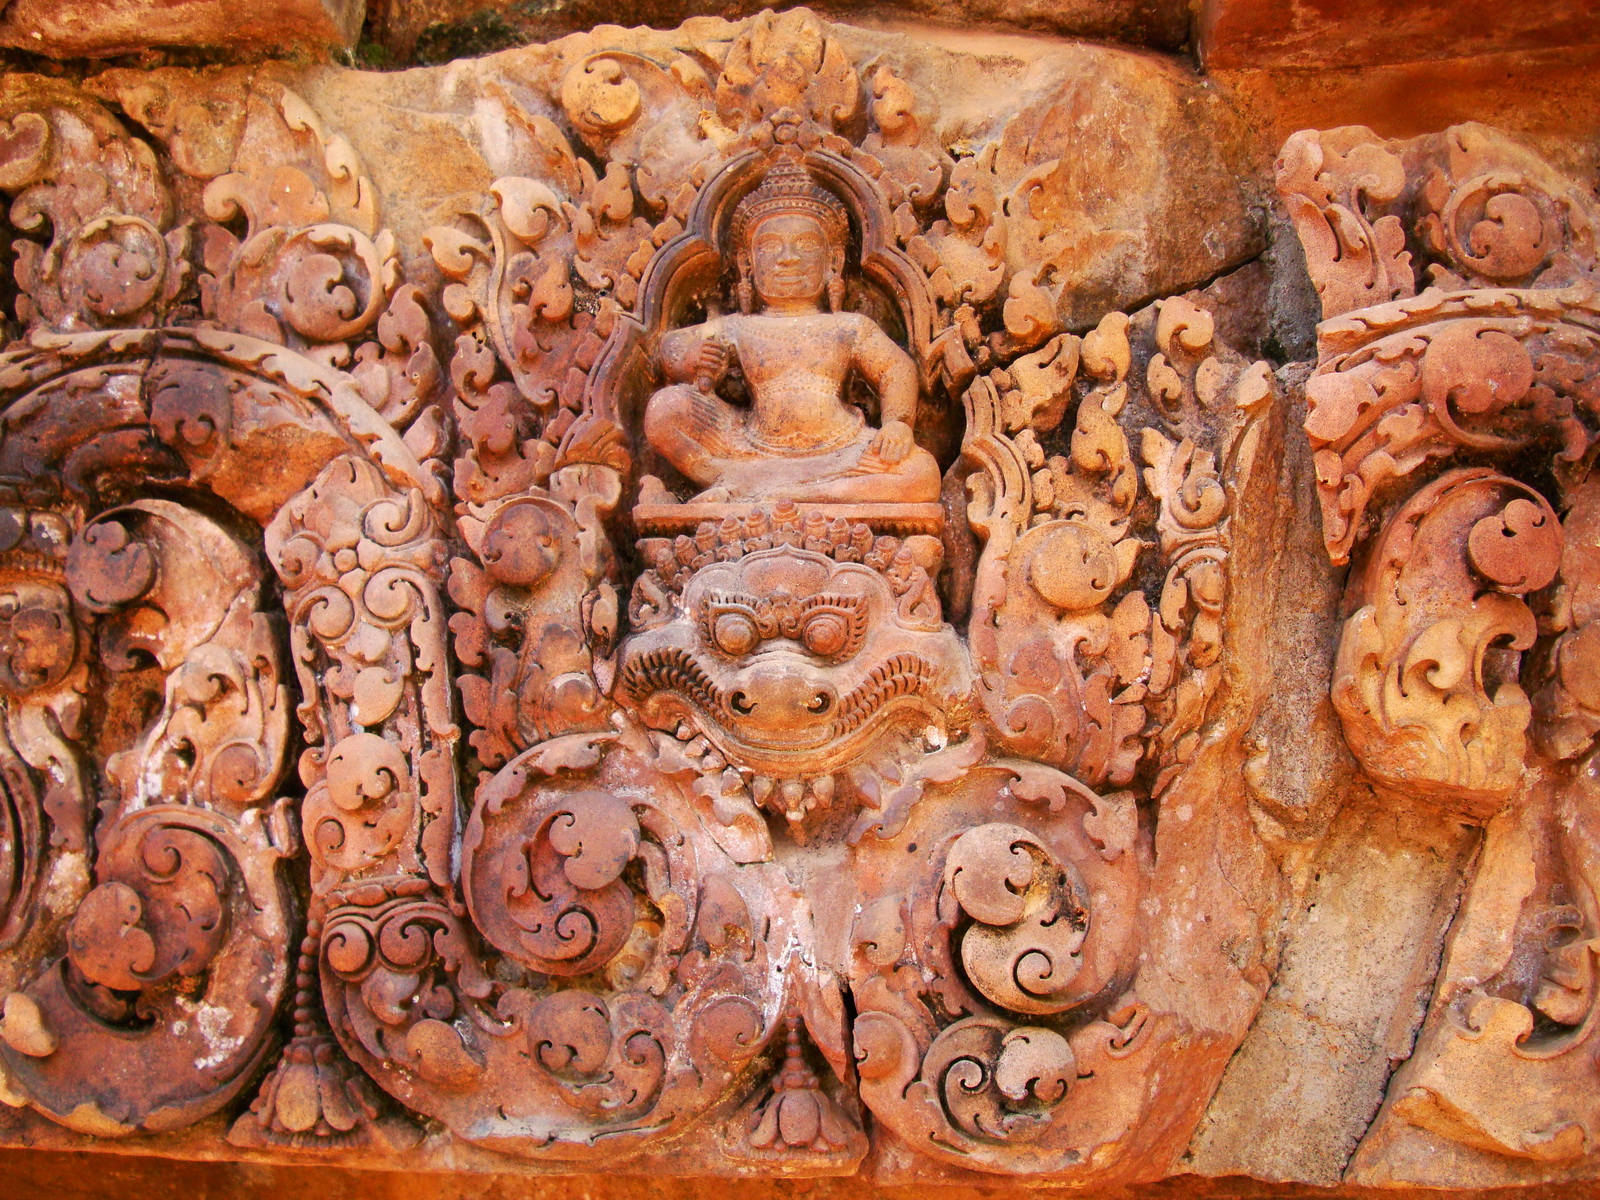 Gate arch carving of Kala a mythical creature of the god Siva 21